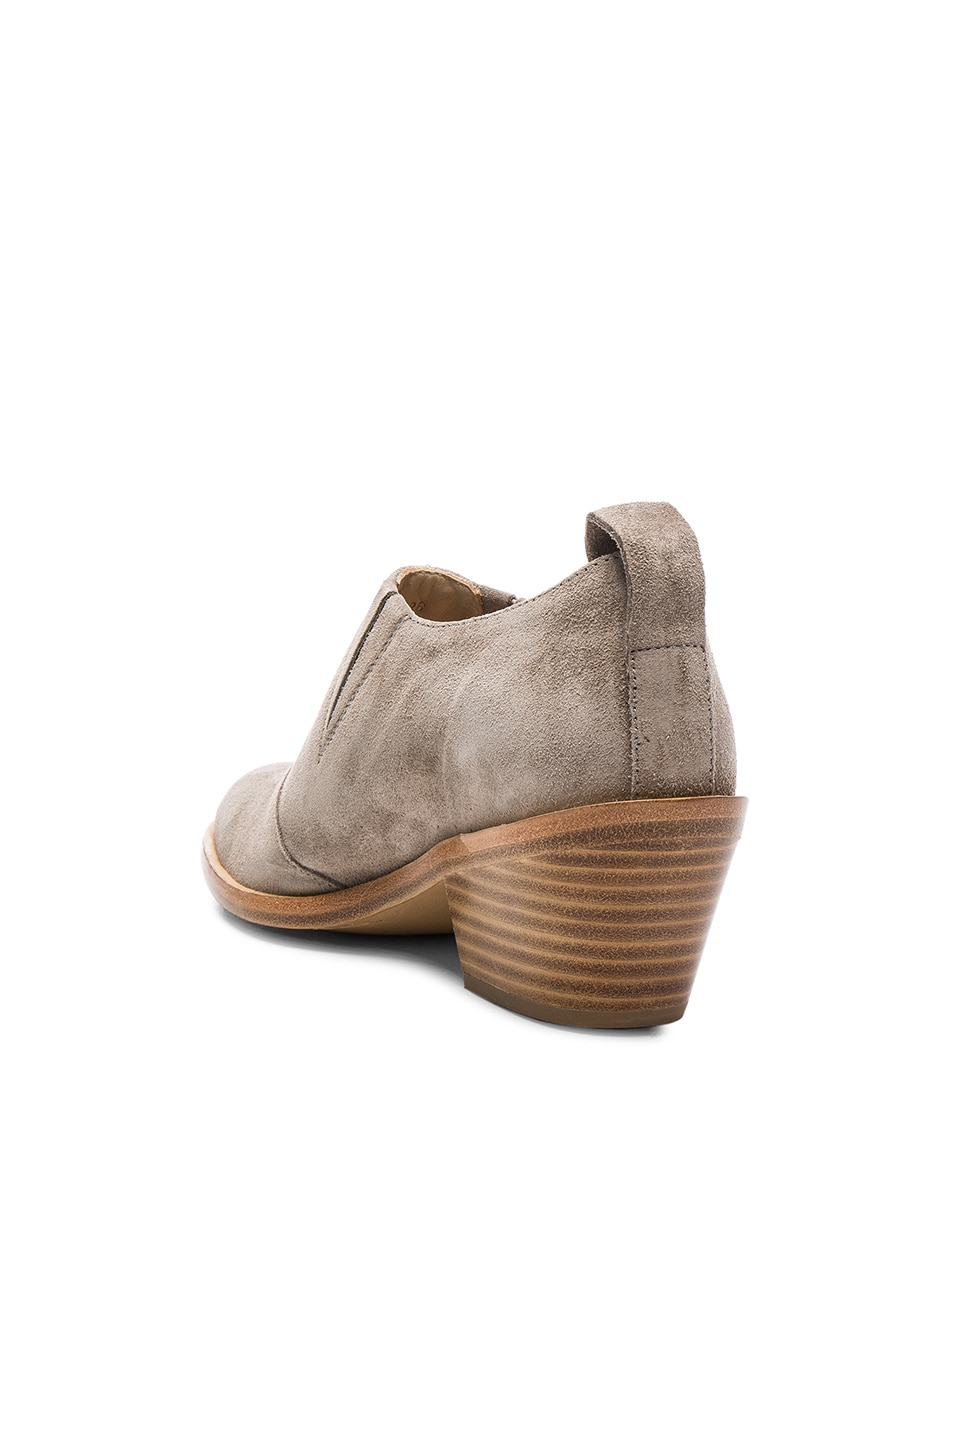 Image 3 of Rag & Bone Suede Thompson Boots in Warm Grey Suede